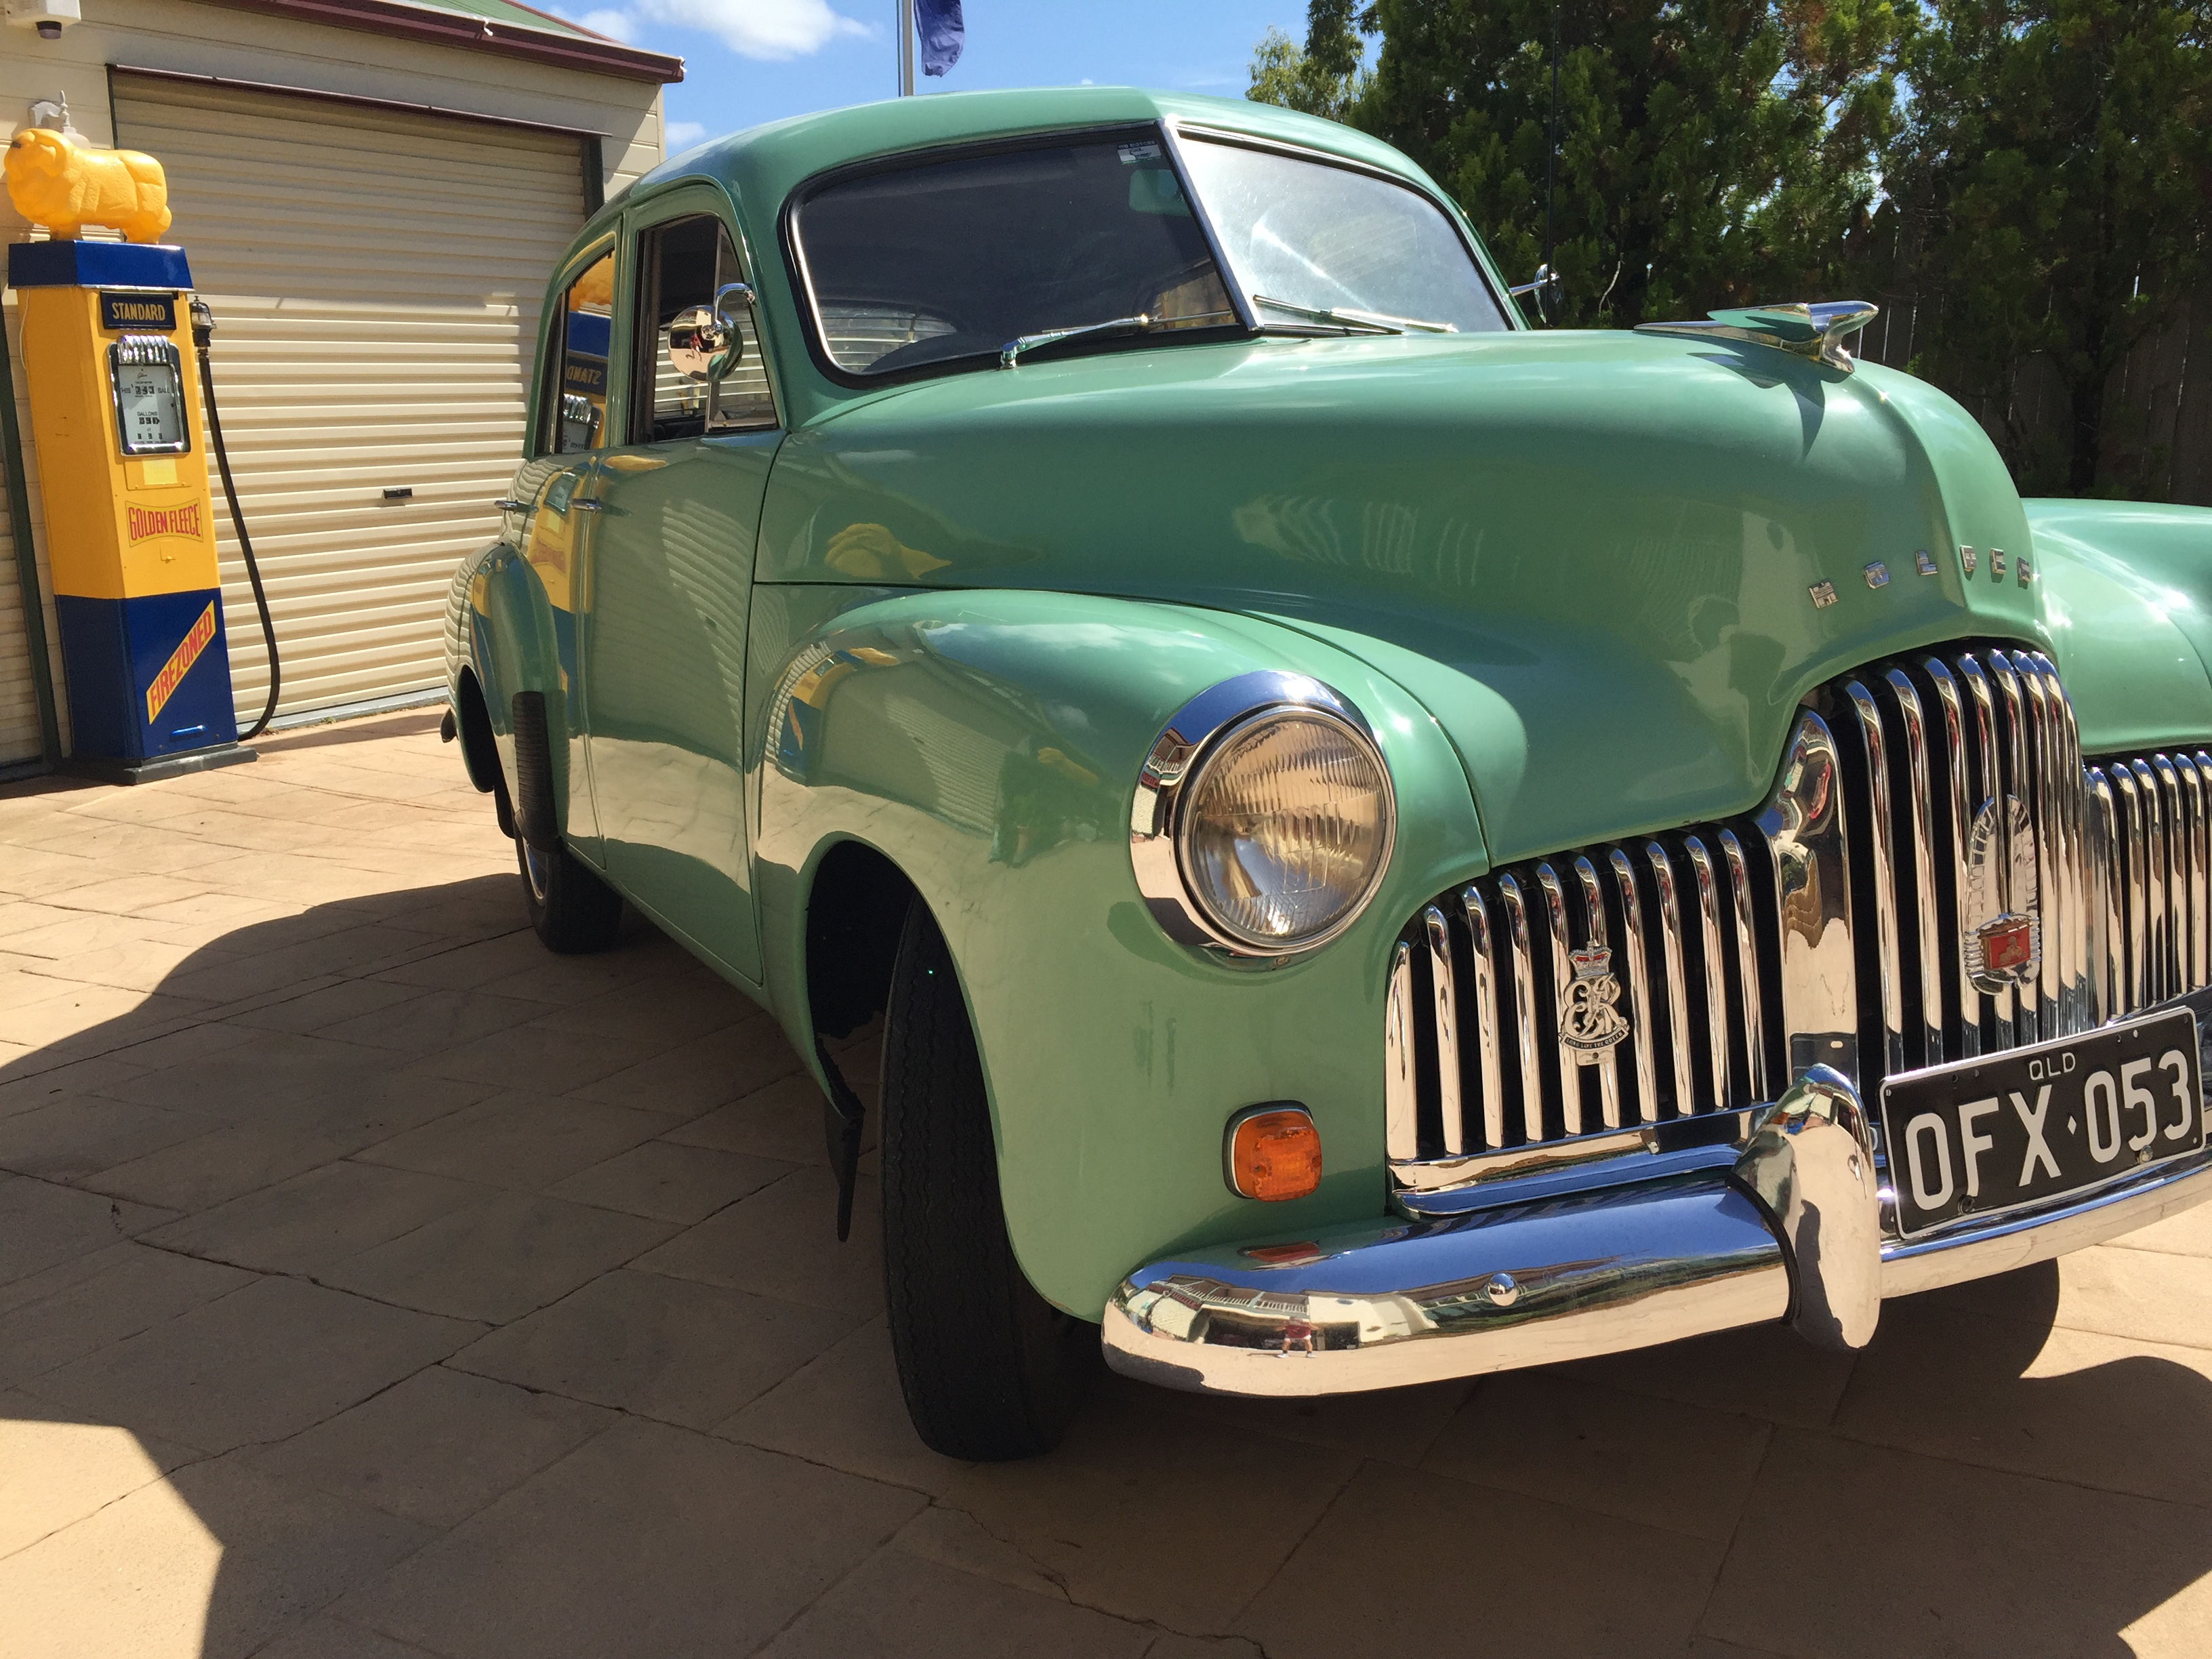 HOLDEN 48 - 215 FX